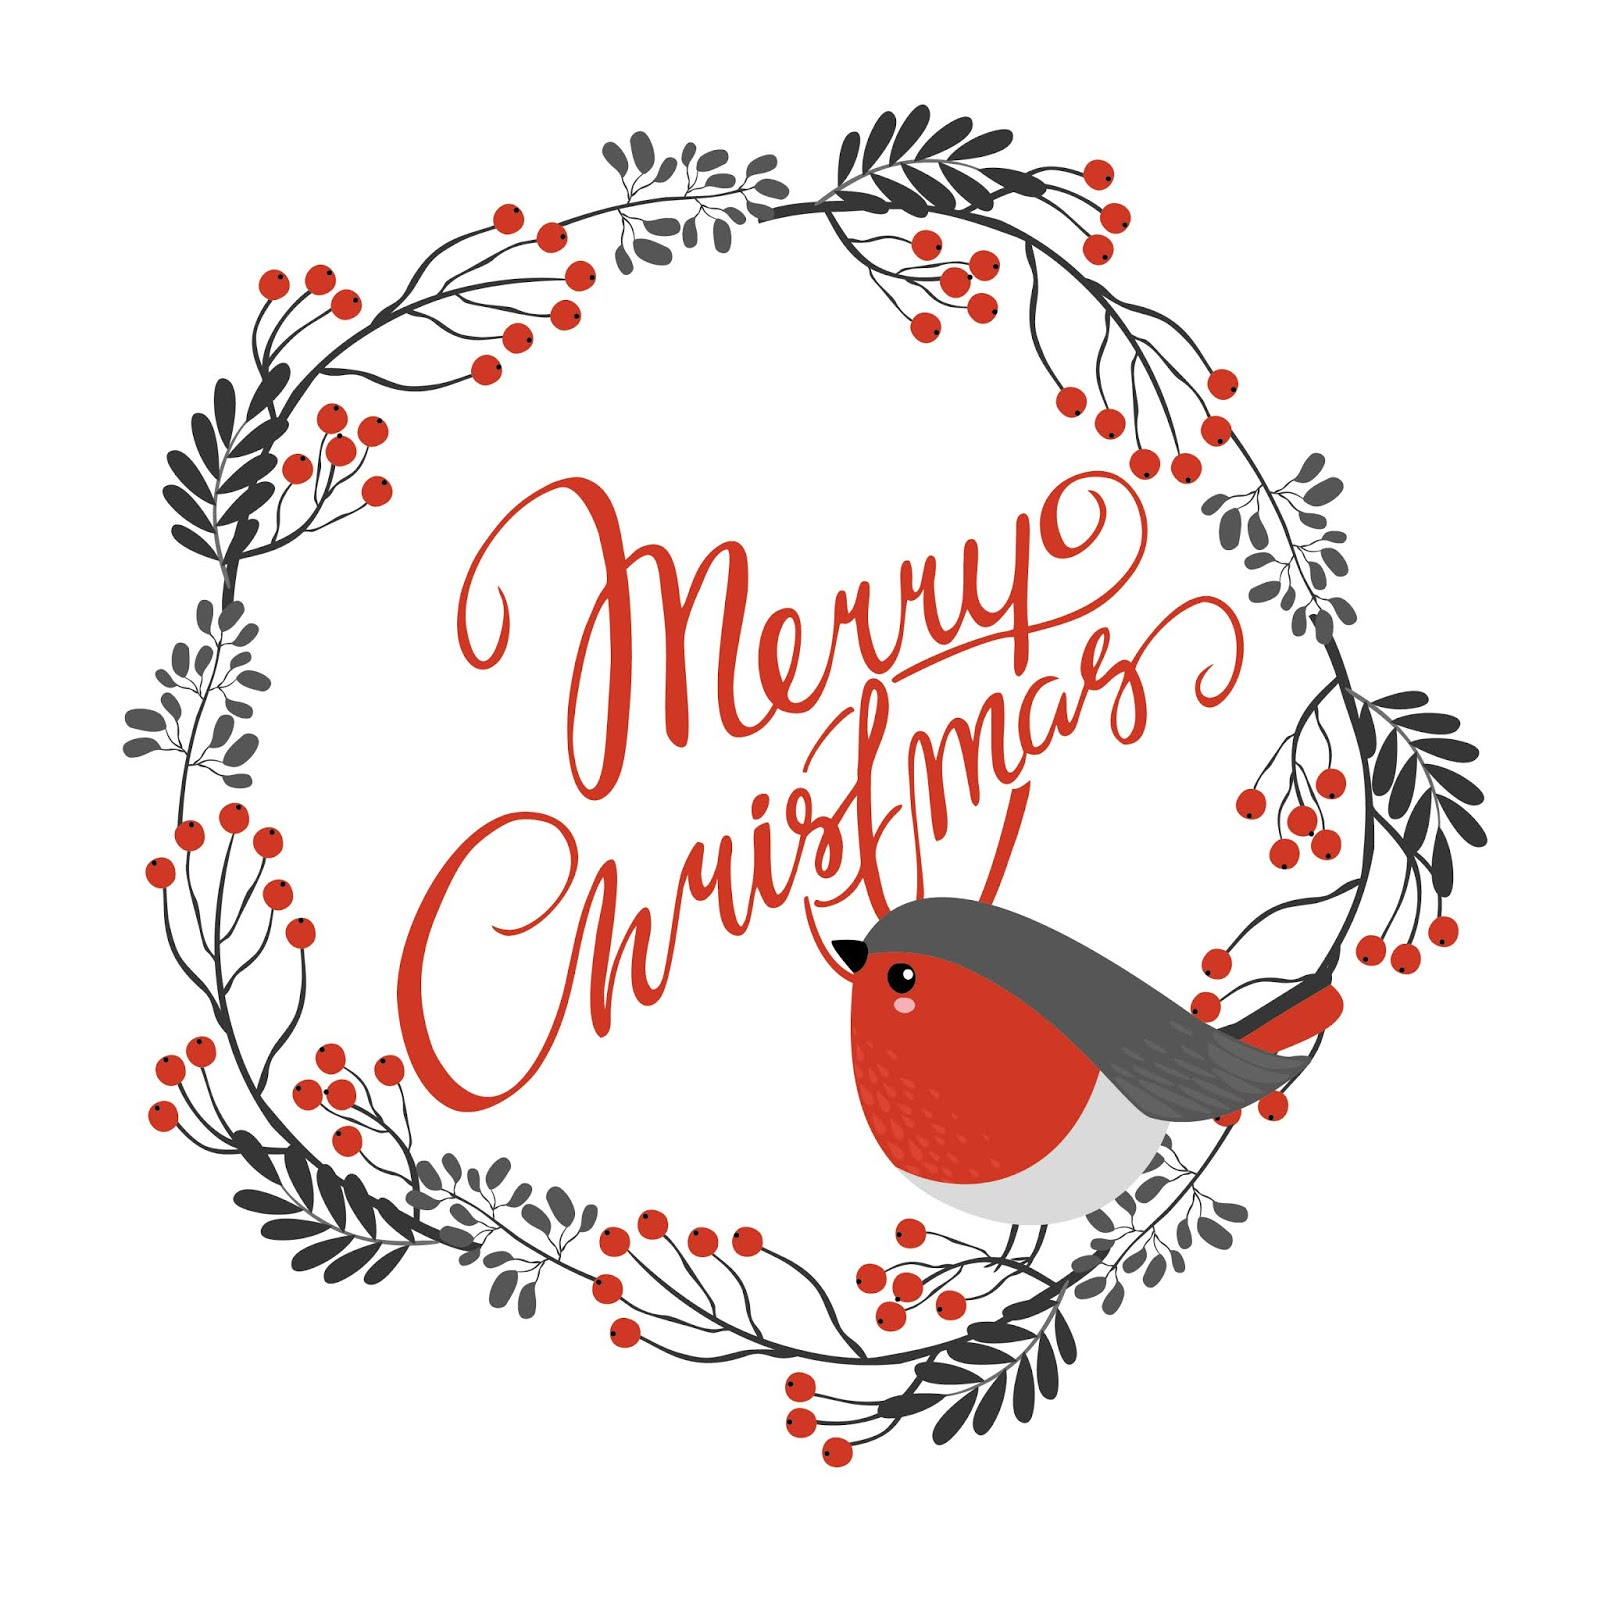 Merry Christmas Free Download Vector CDR, AI, EPS and PNG Formats